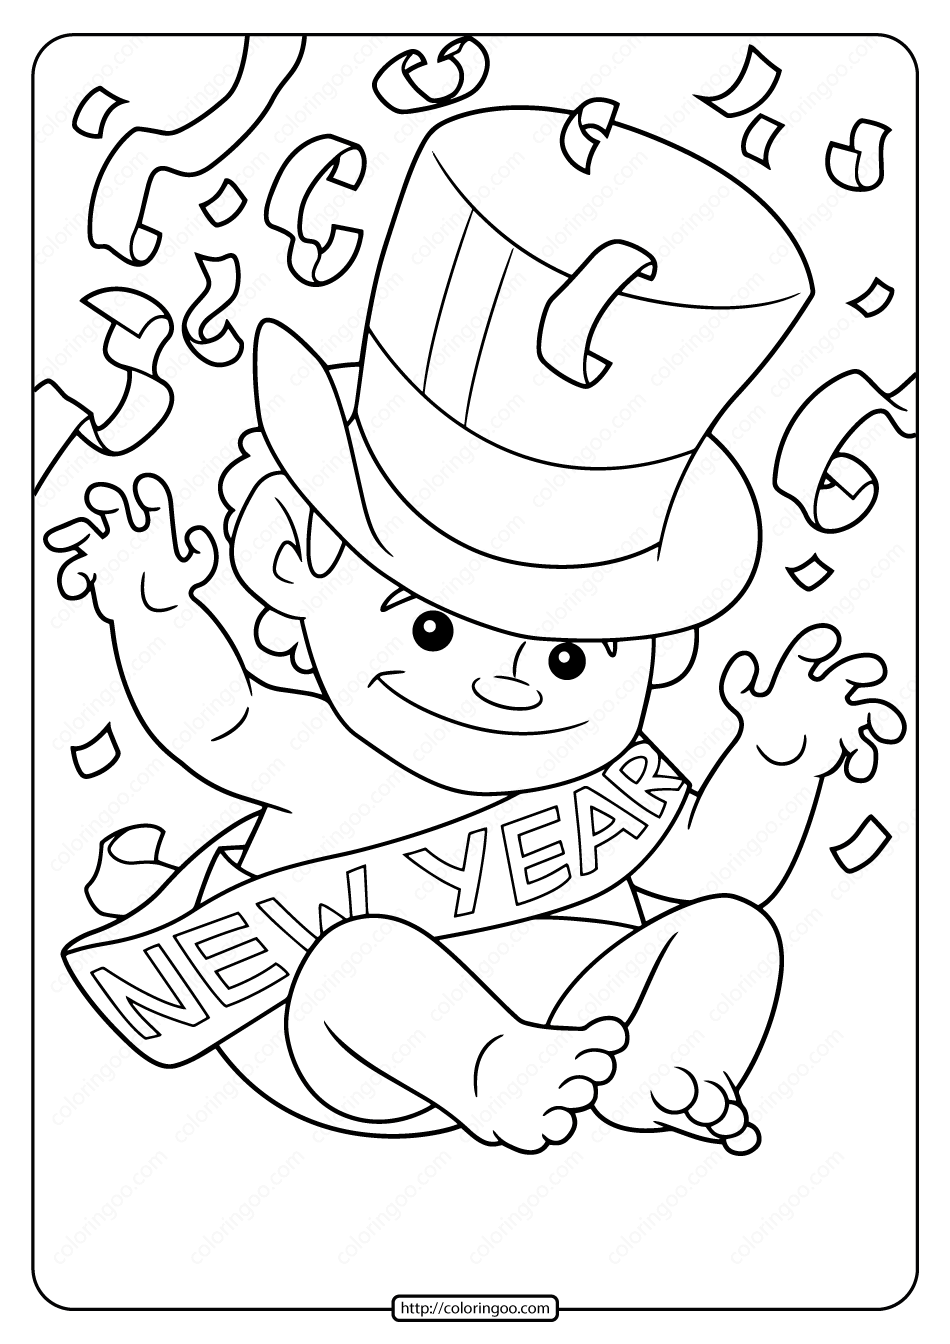 Free Printable New Year Baby Pdf Coloring Page New Year Coloring Pages Coloring Pages Baby Coloring Pages